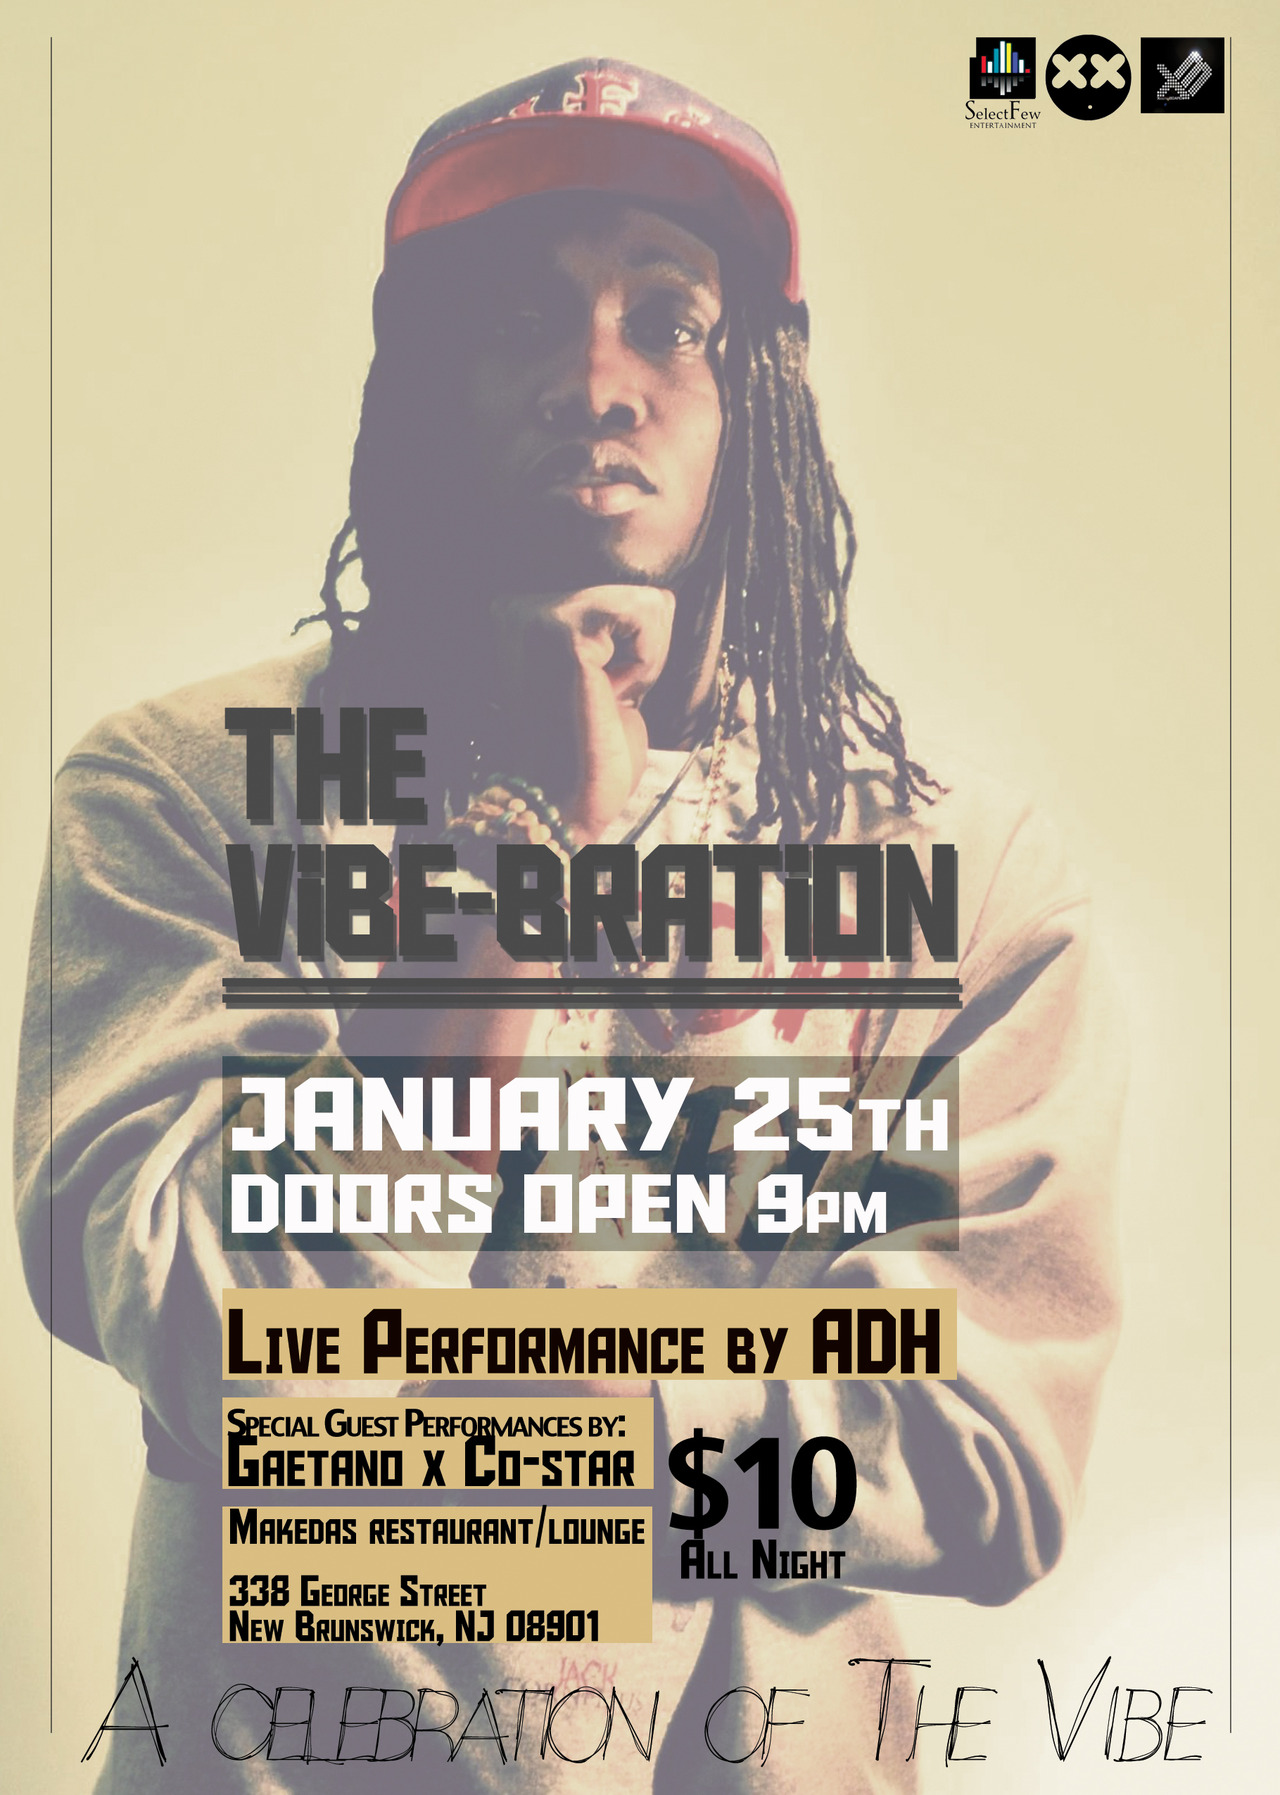 The Vibe-bration!!!! Celebrating the release of ADH's forth mixtape TheVibe! jan 25th at Makedas downtown New Brunswick nj. doors open at 9 Live performance of TheVibe w/Live band!  Special Guest performances by Gaetano, Co-Star. Music by Michael Medium!! 21 n up event!!!! no hats, boots!!!